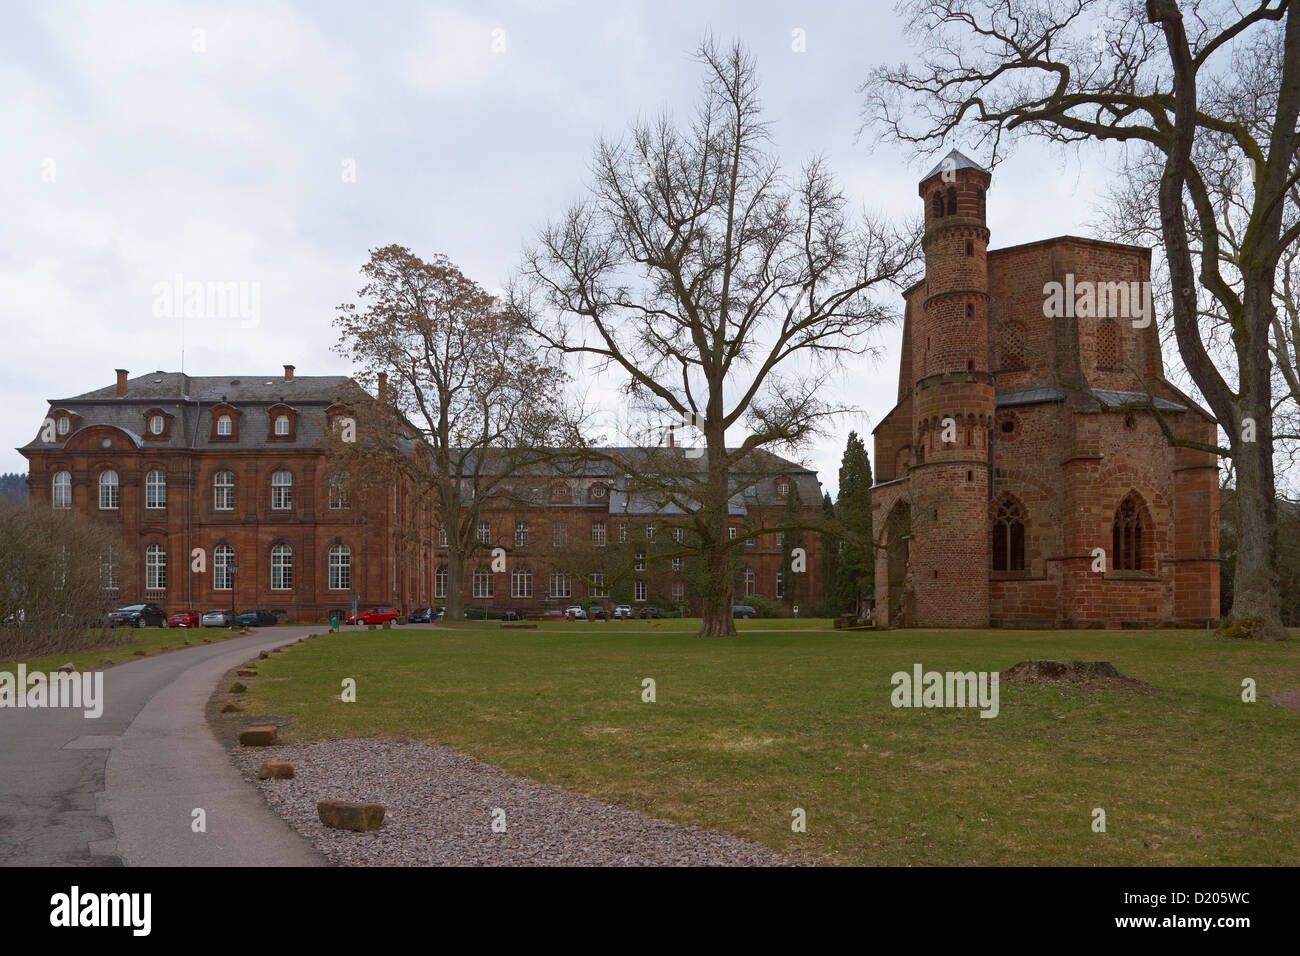 Villeroy Und Boch Saarland Old Tower And Old Abbey In The Park Adventure Center Villeroy